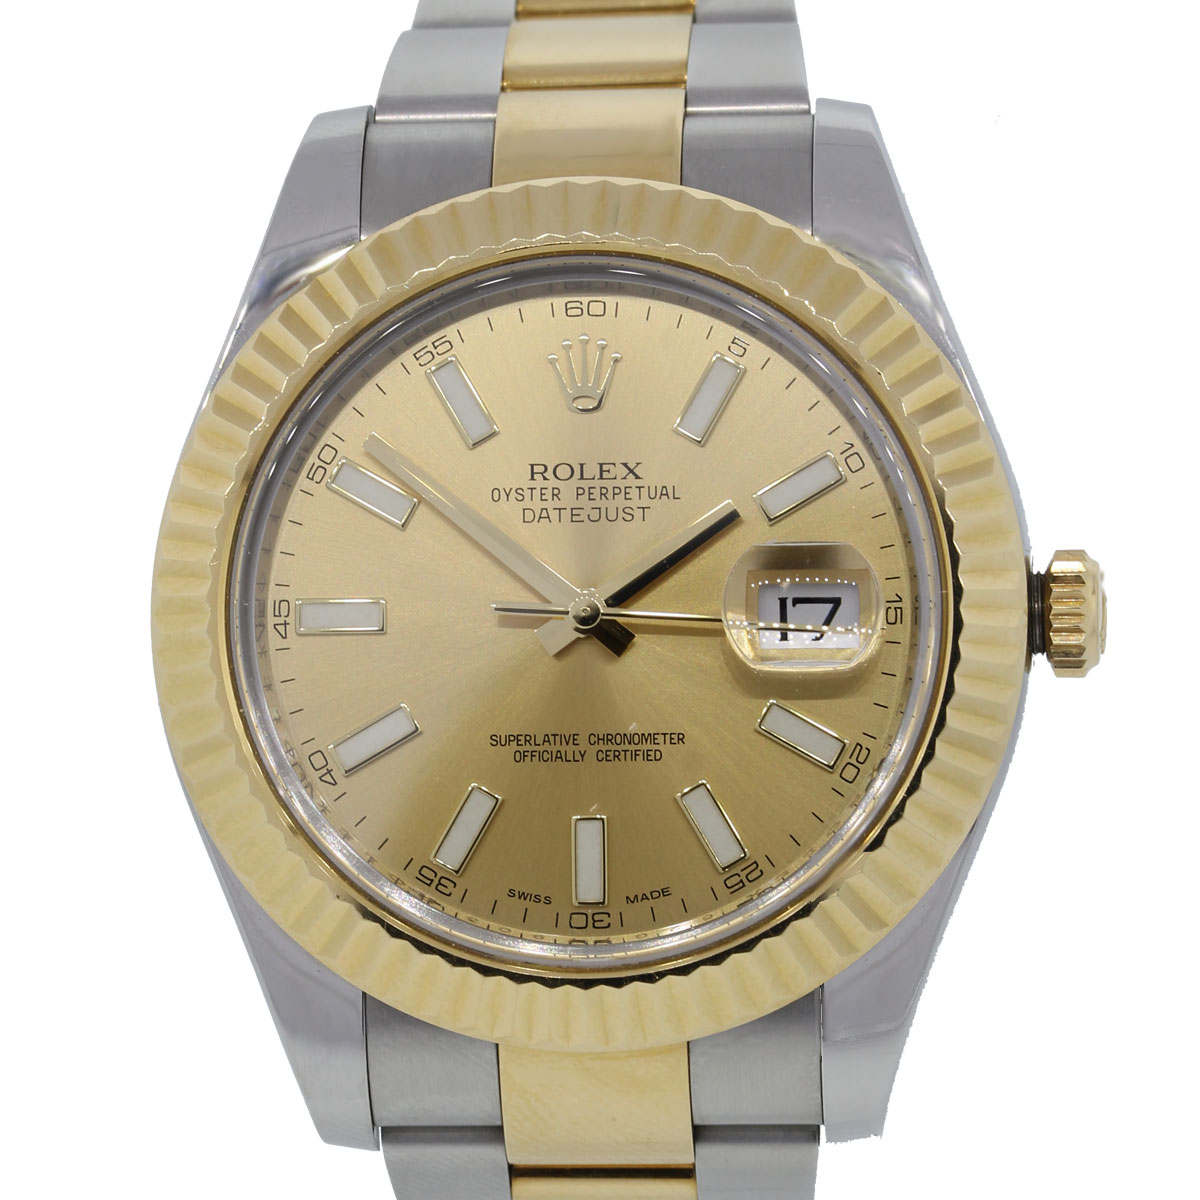 You are viewing this Rolex 116333 Datejust II Gold Dial TT Watch!